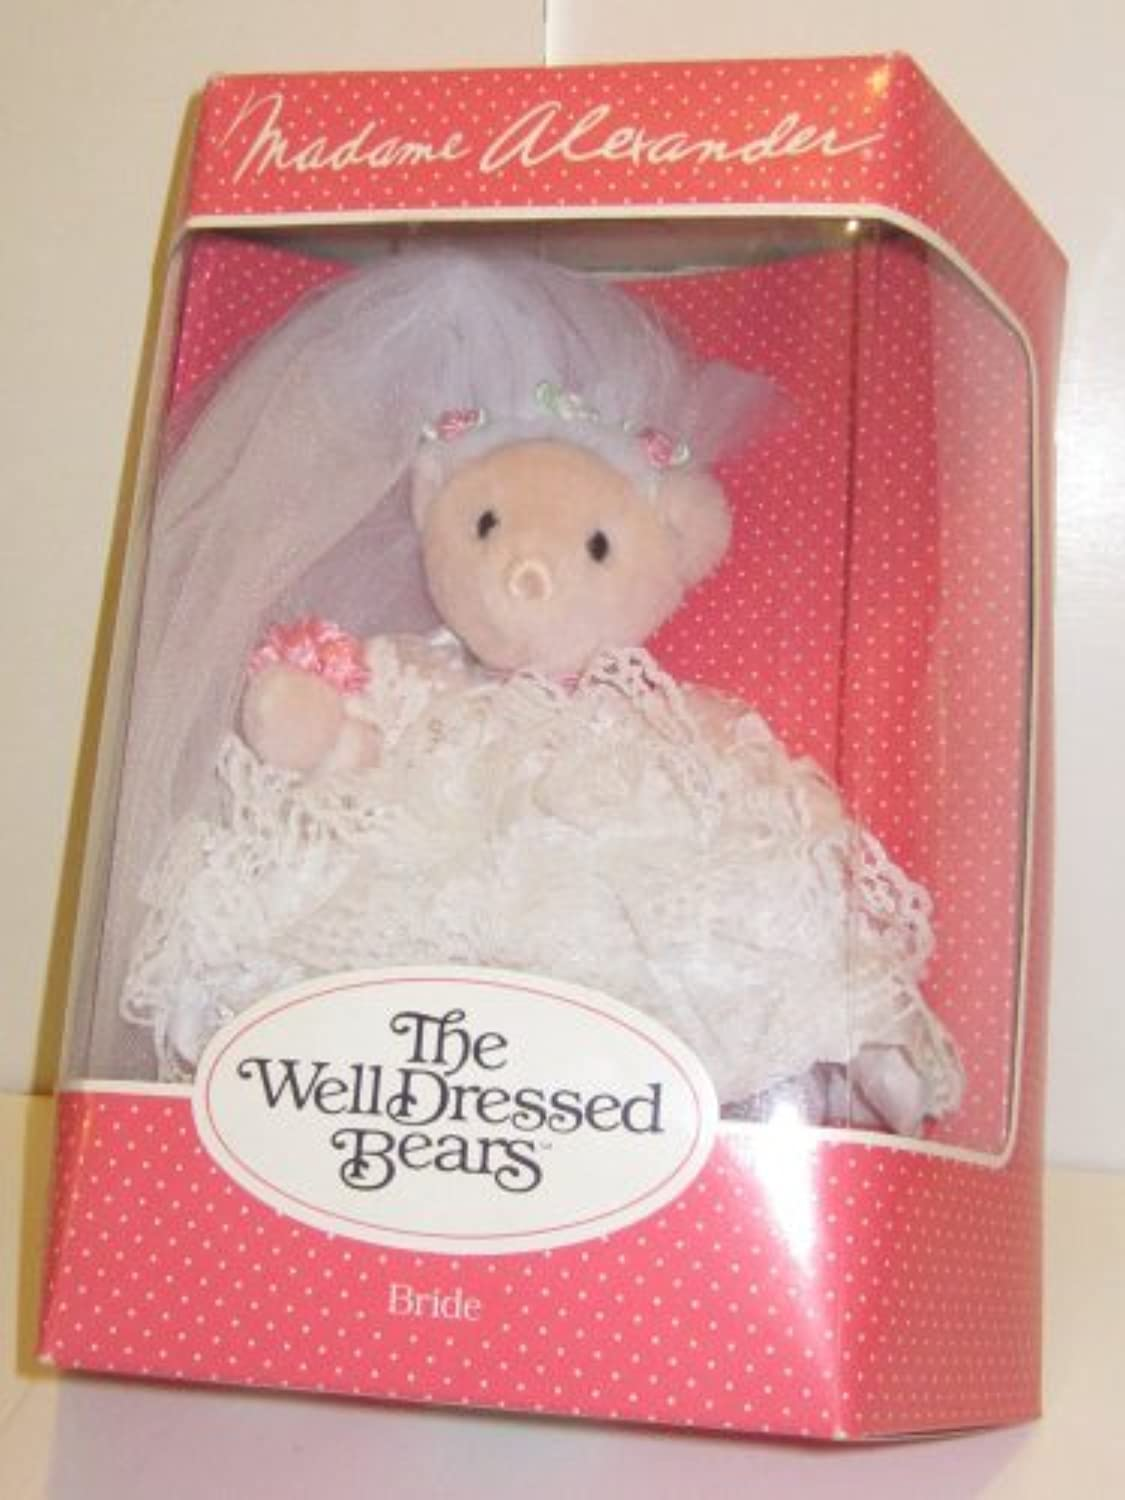 punto de venta barato Collectible Madame Alexander Well Dressed Bears Bride by The The The Well Dressed Bears  grandes ahorros